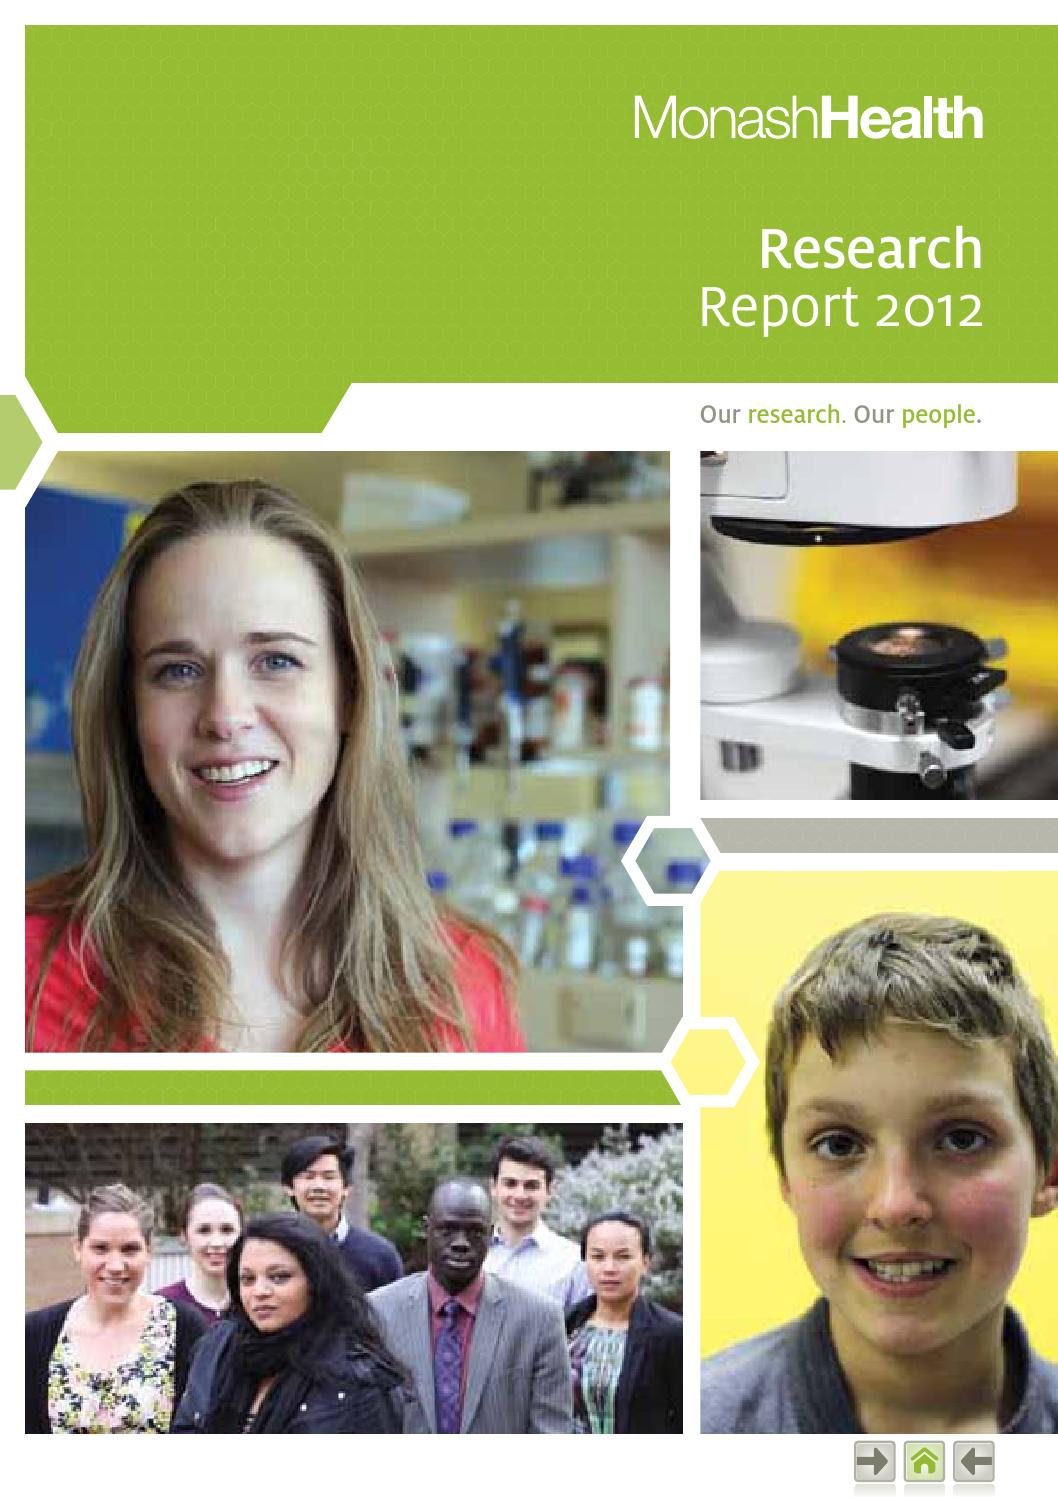 Monash Health Research Report 2012 by Monash Health Research ...